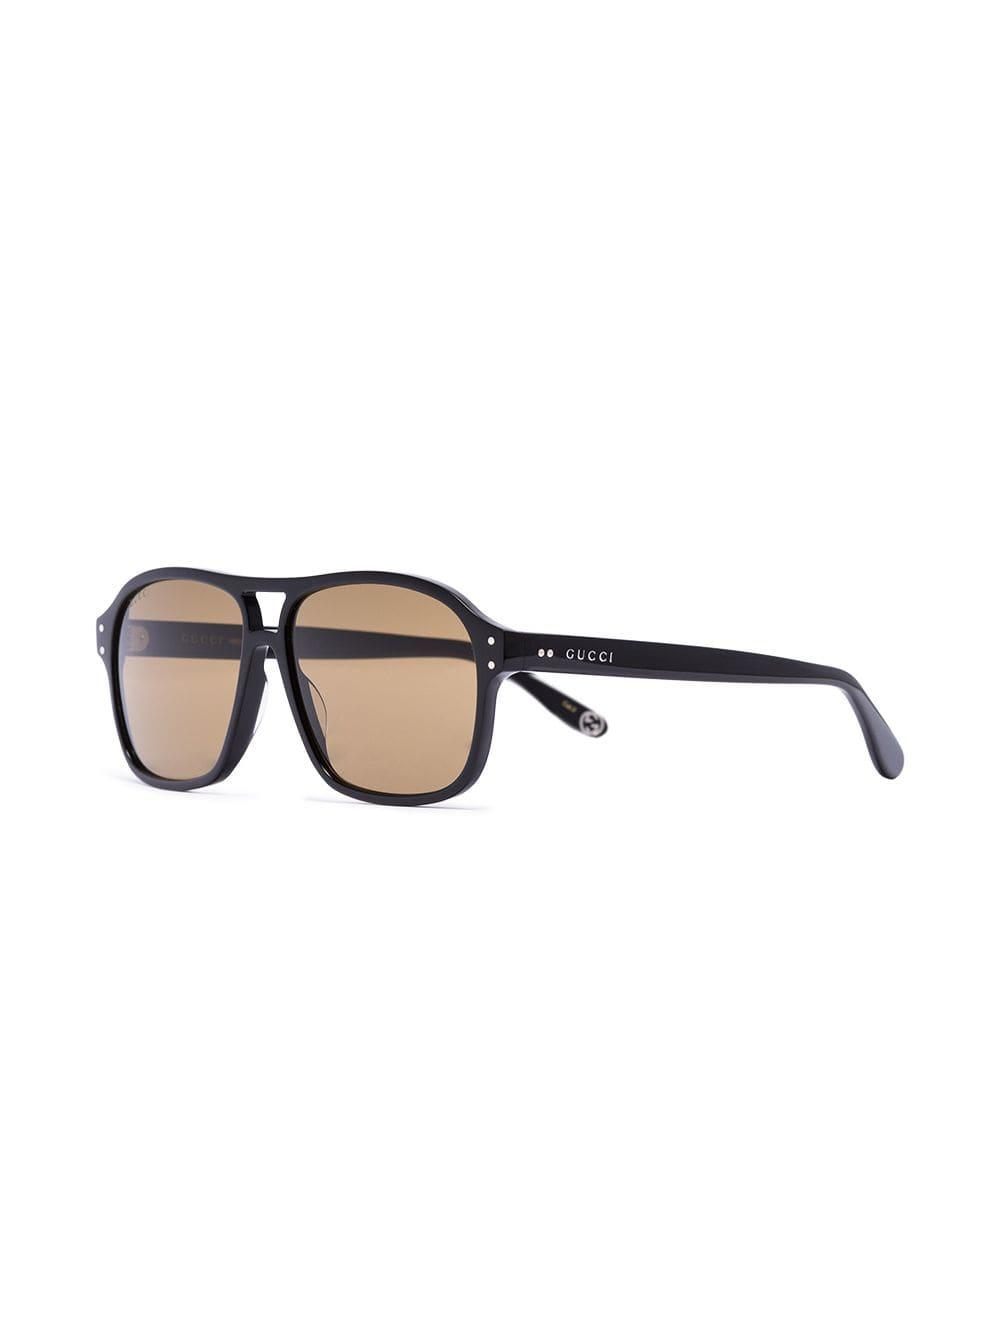 654d4b6cbb Lyst - Gucci Black Tinted Aviator Sunglasses in Black for Men